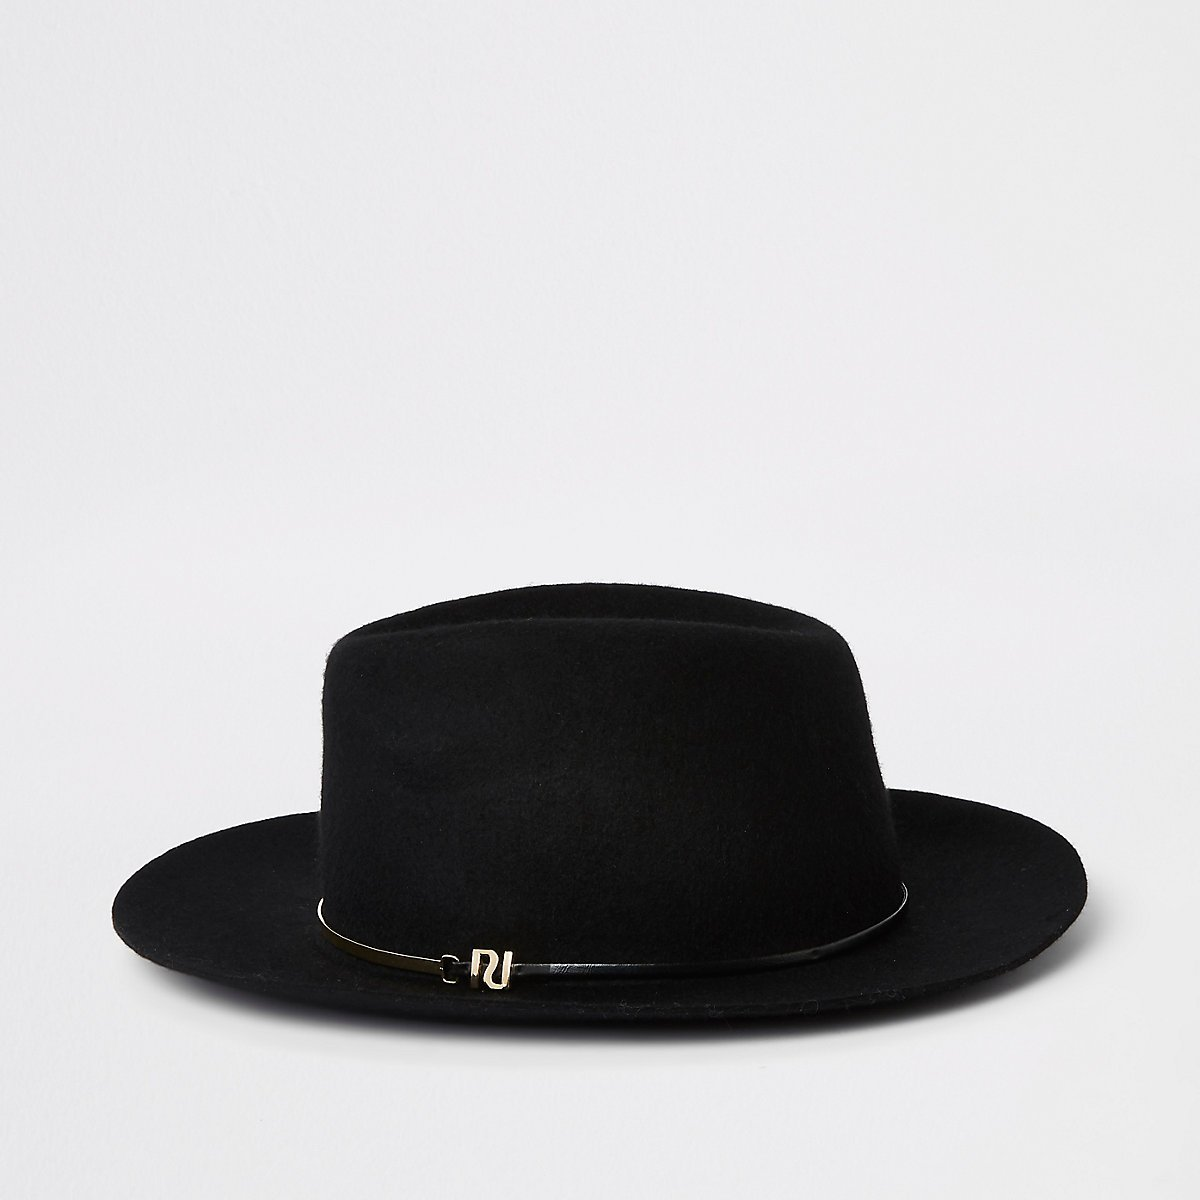 Black felt gold bar trim fedora hat - Hats - Accessories - women